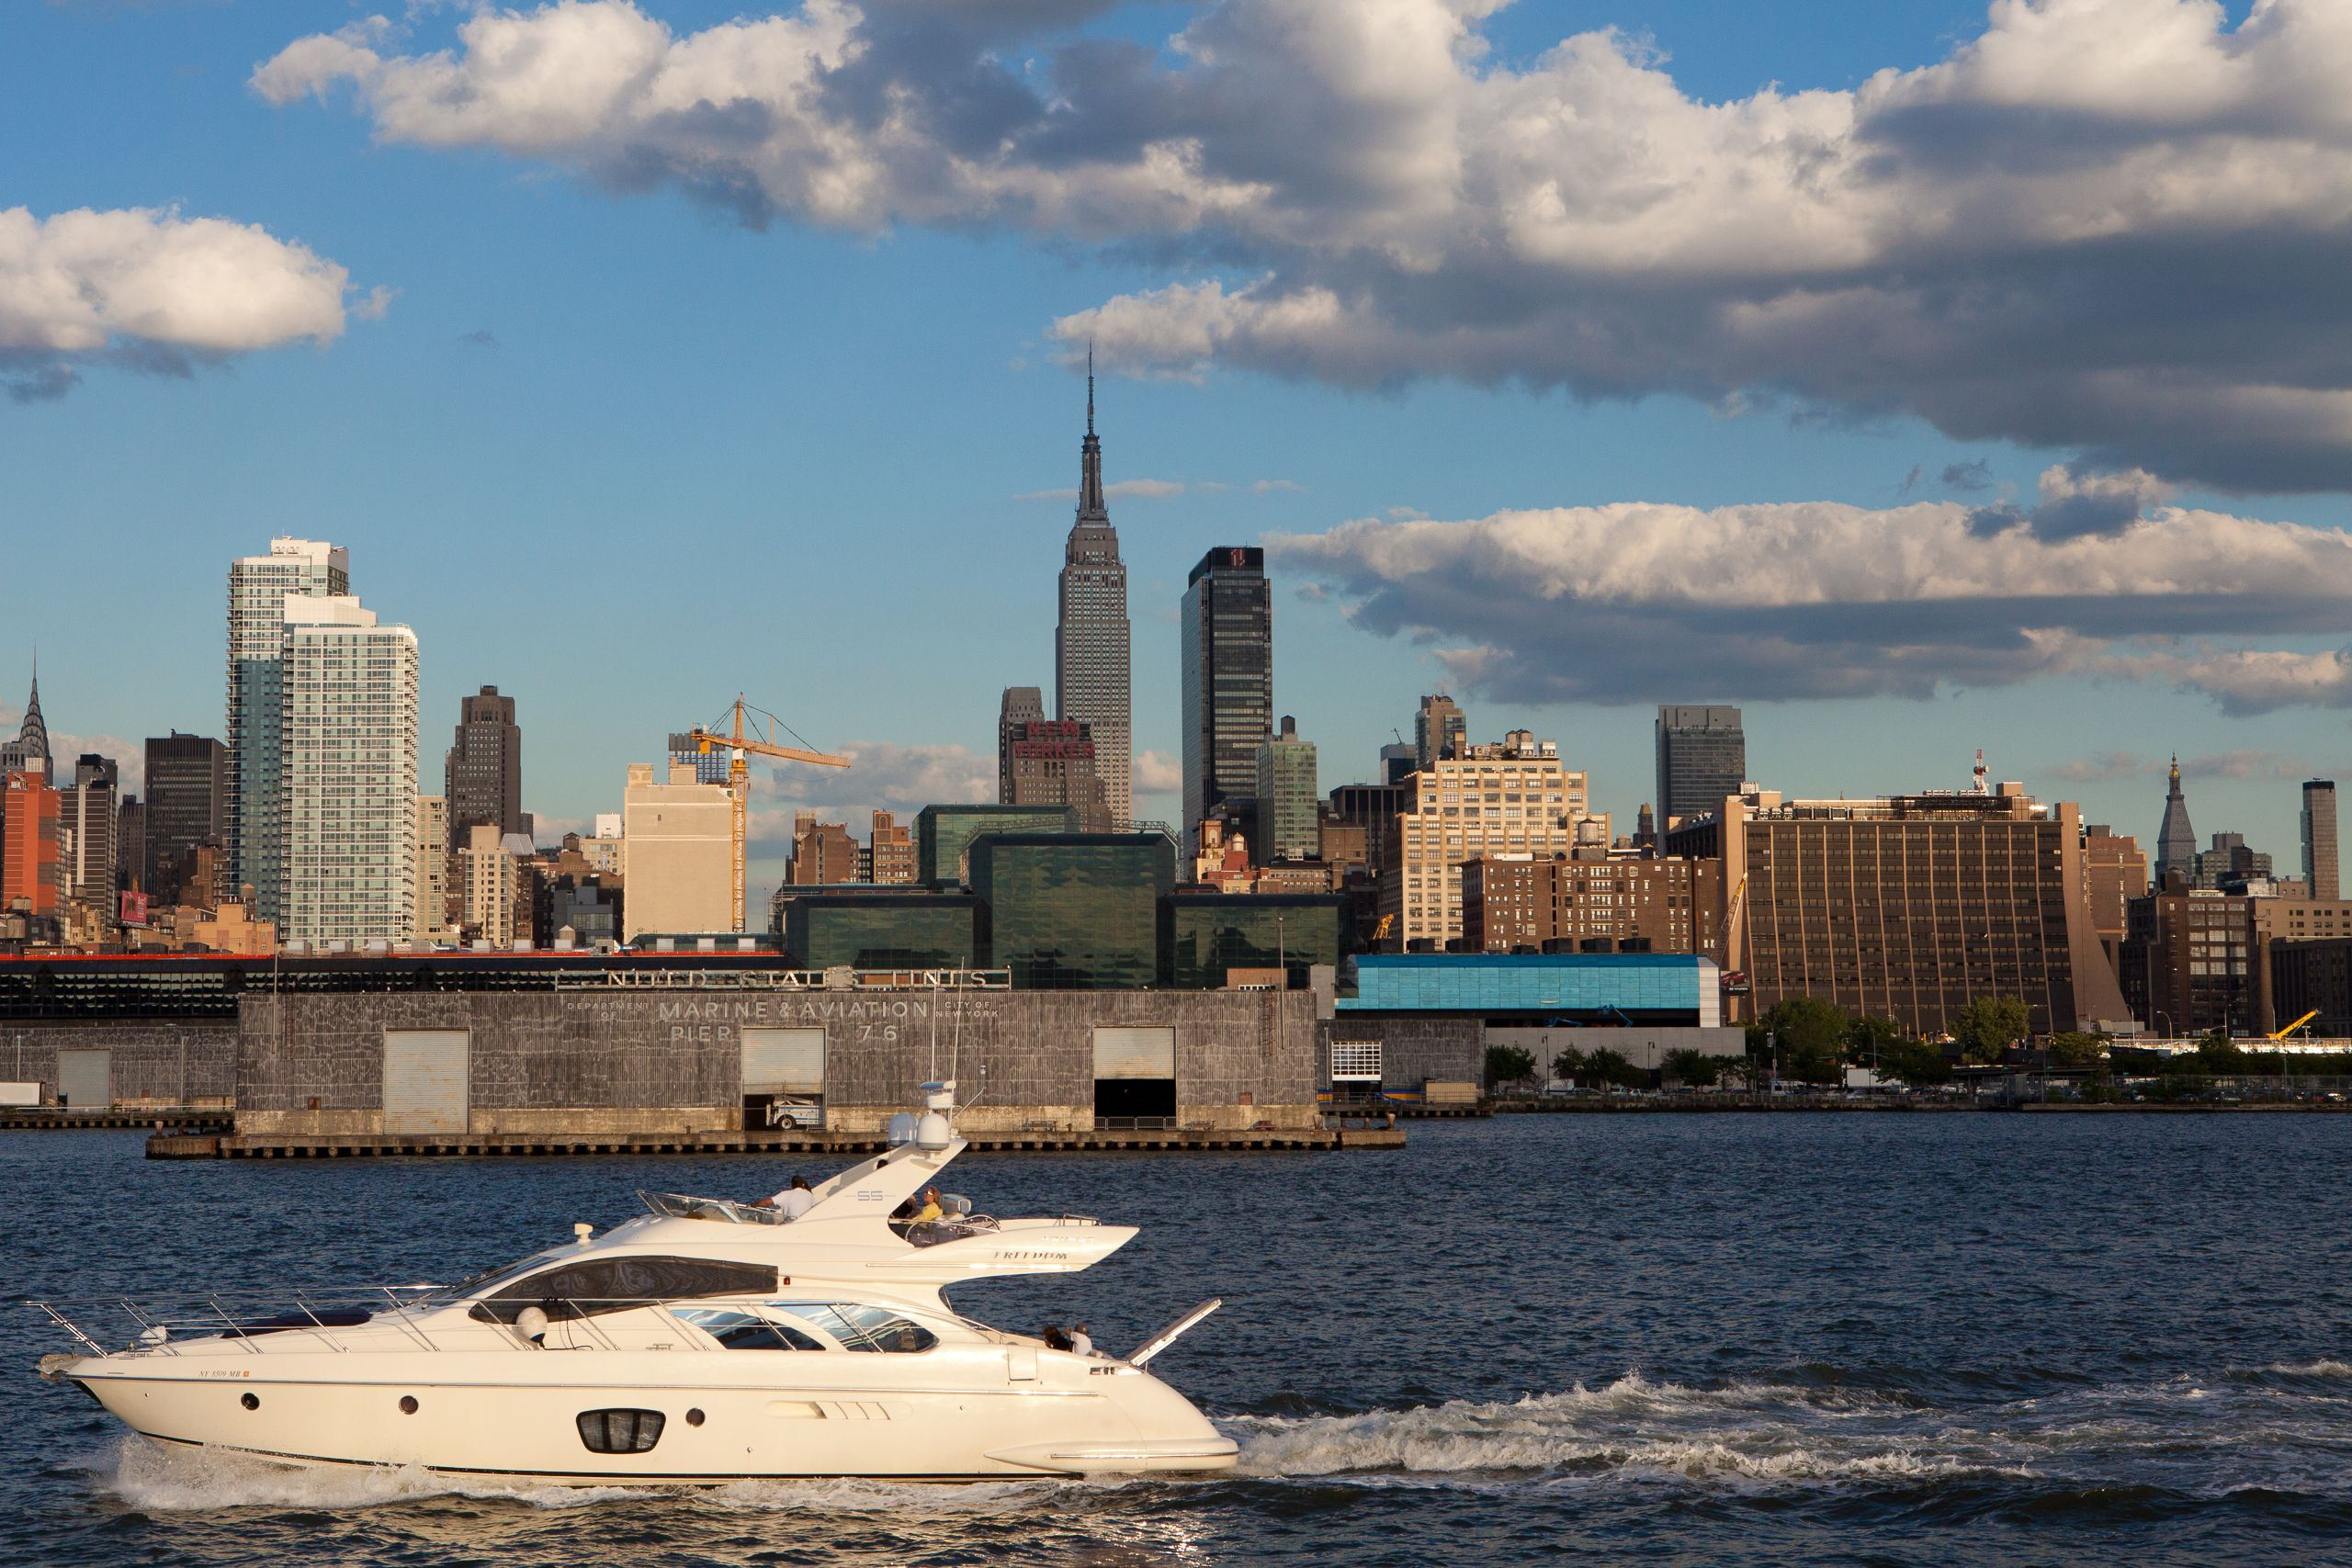 Watercraft and Empire State Building as seen from the Hudson River